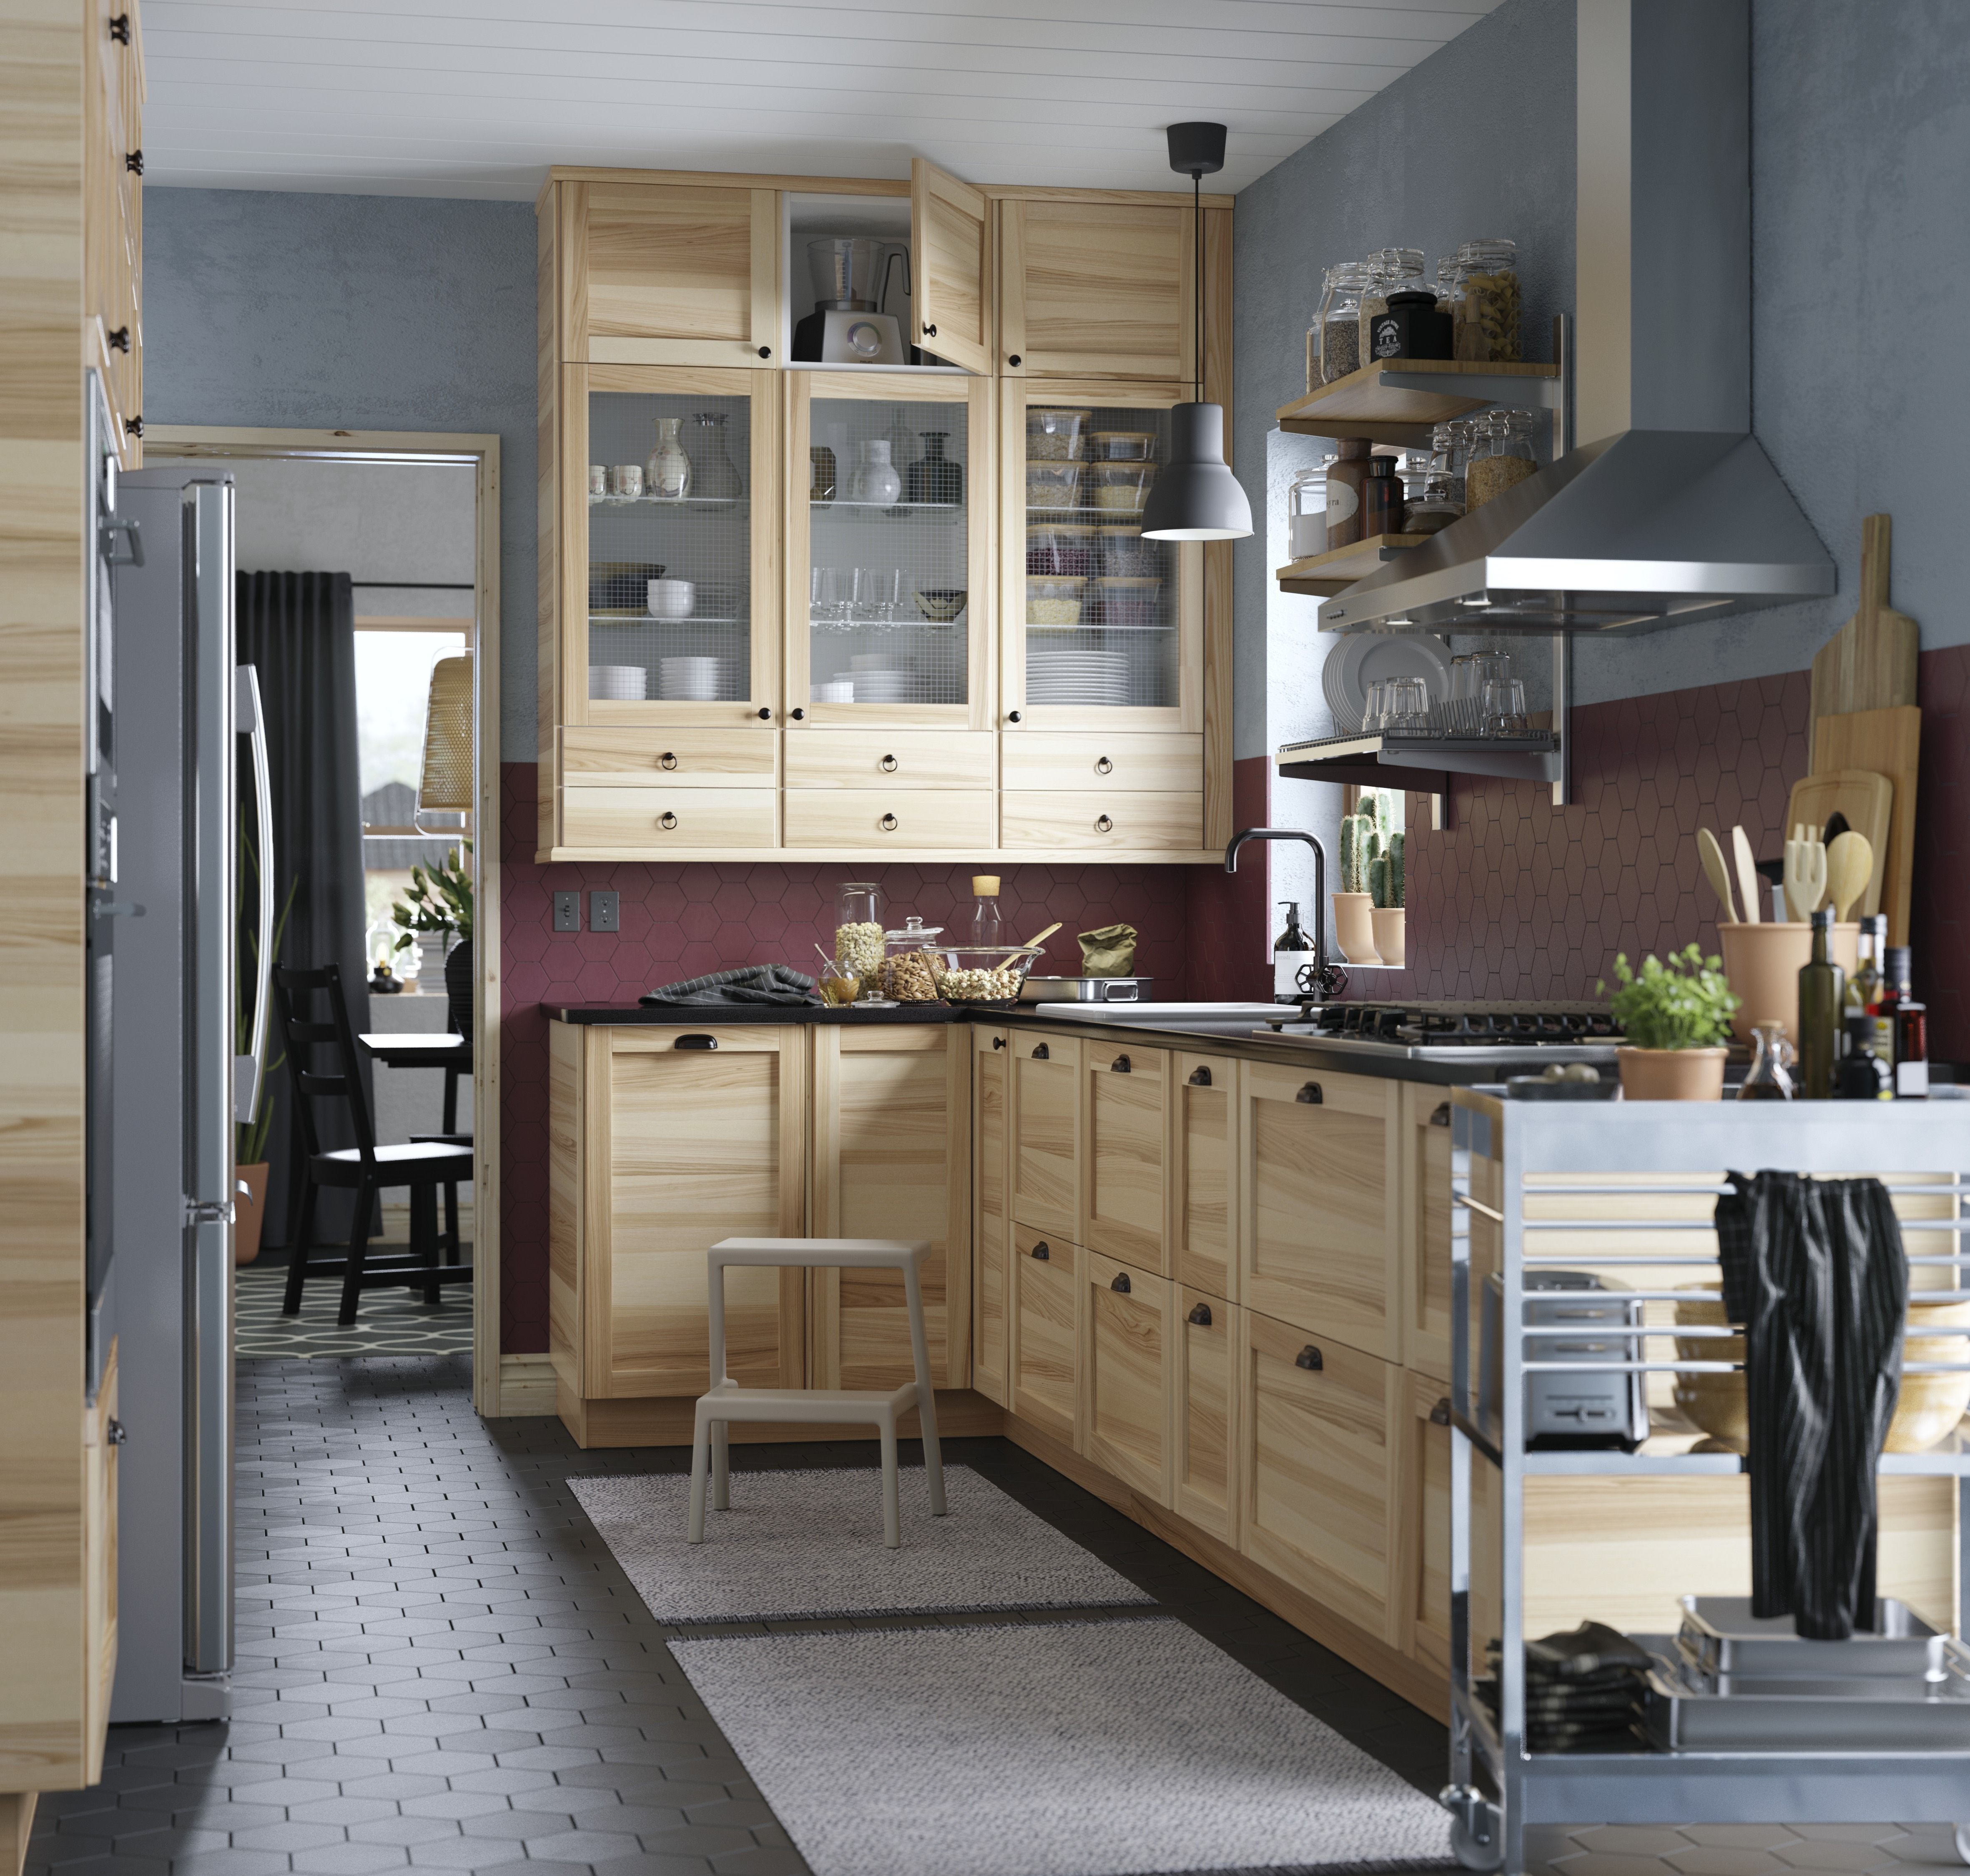 How To Get The Most Out Of Open Shelving In Your Kitchen